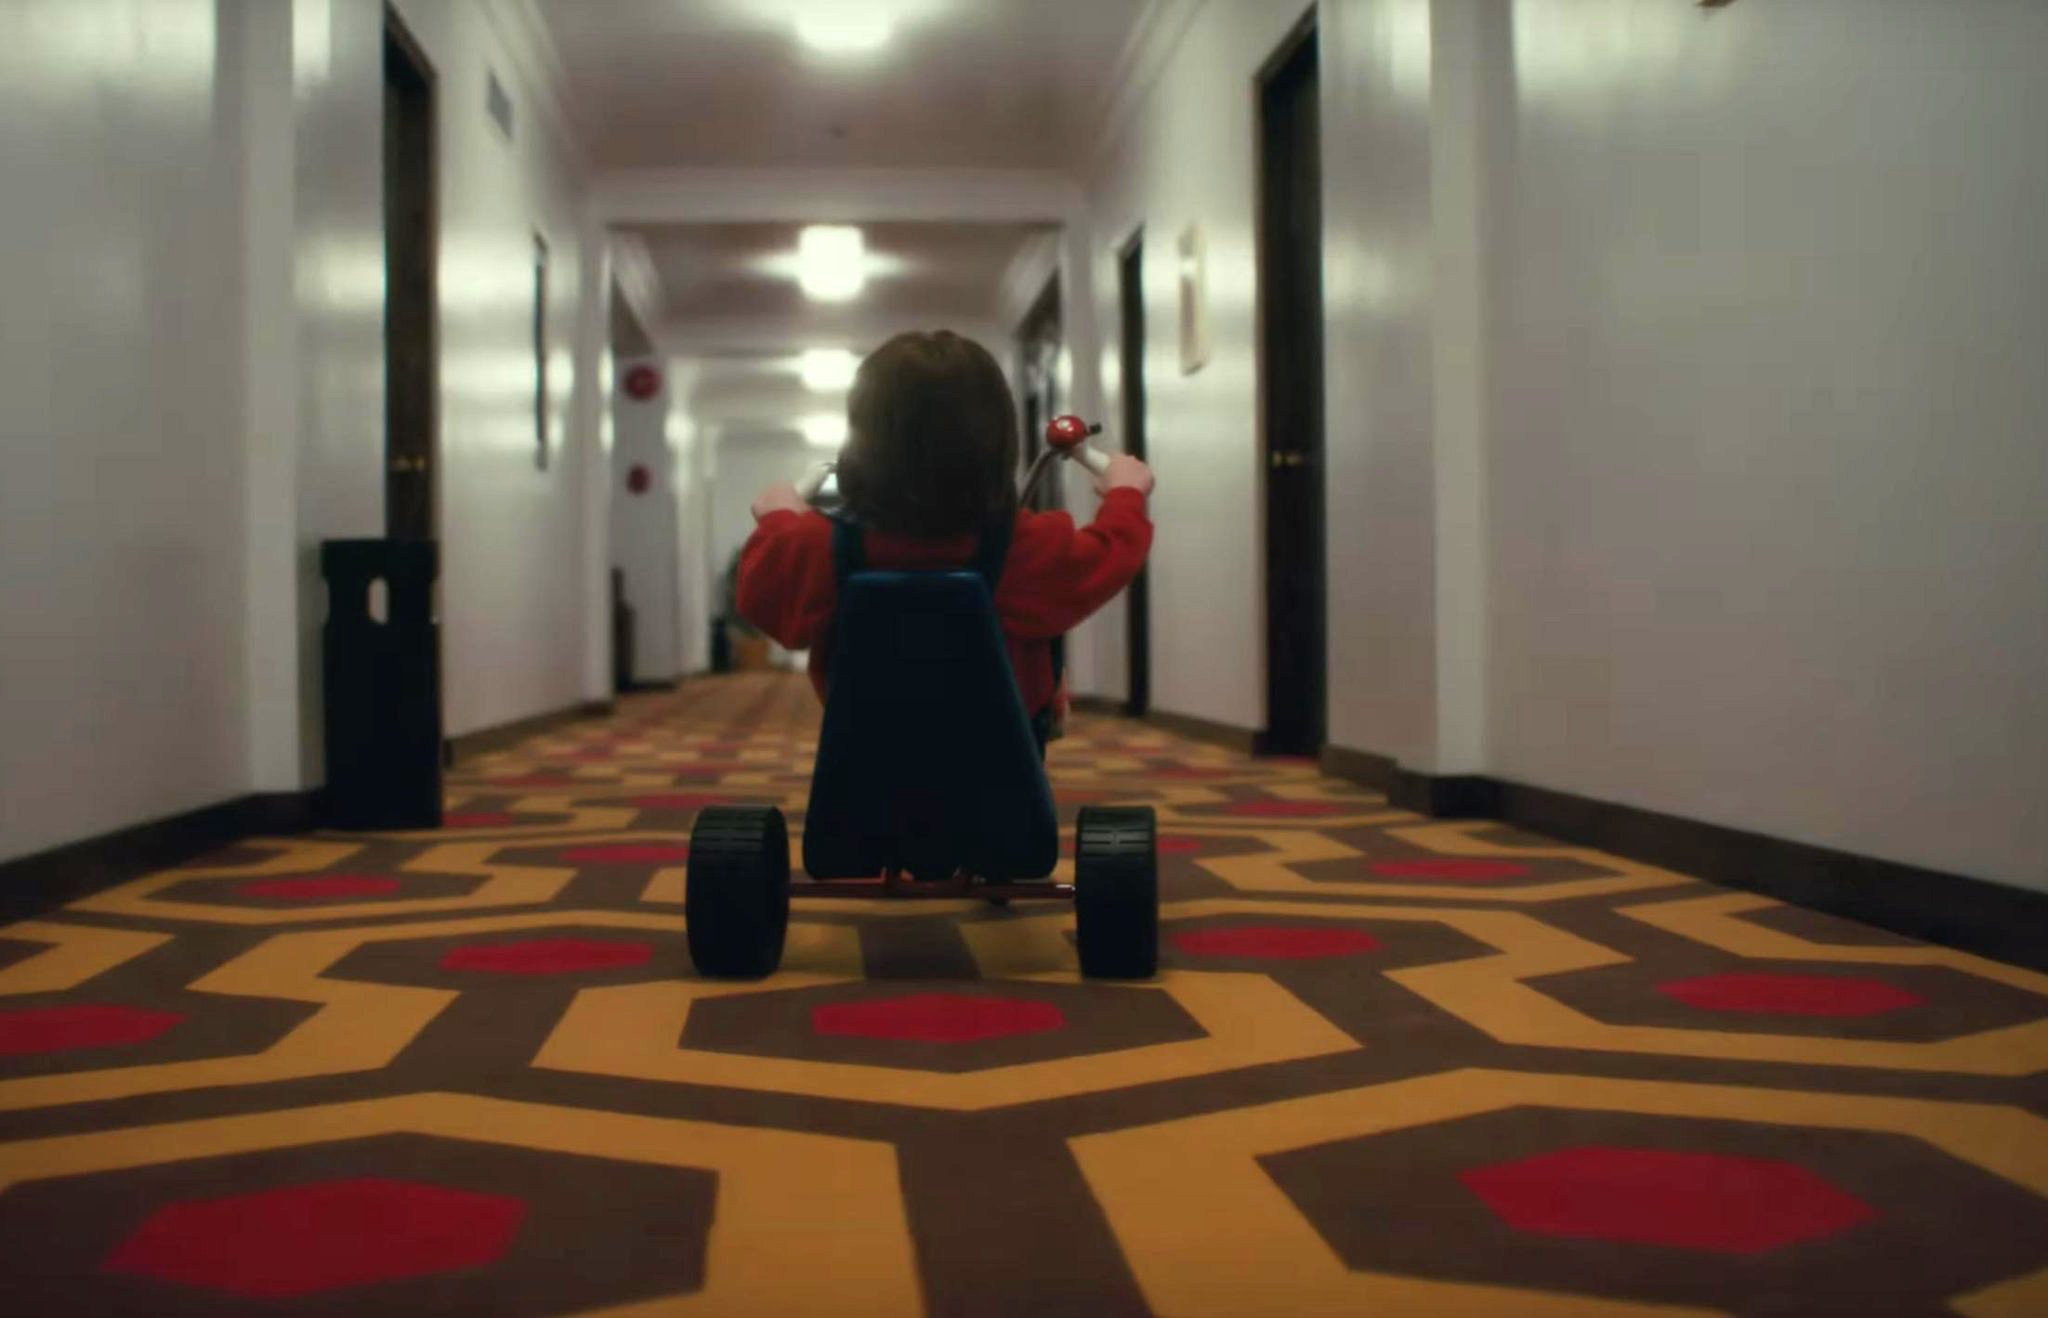 'The Shining' Sequel 'Doctor Sleep' Will Lead 4 New Releases, but Where Are the Hits?